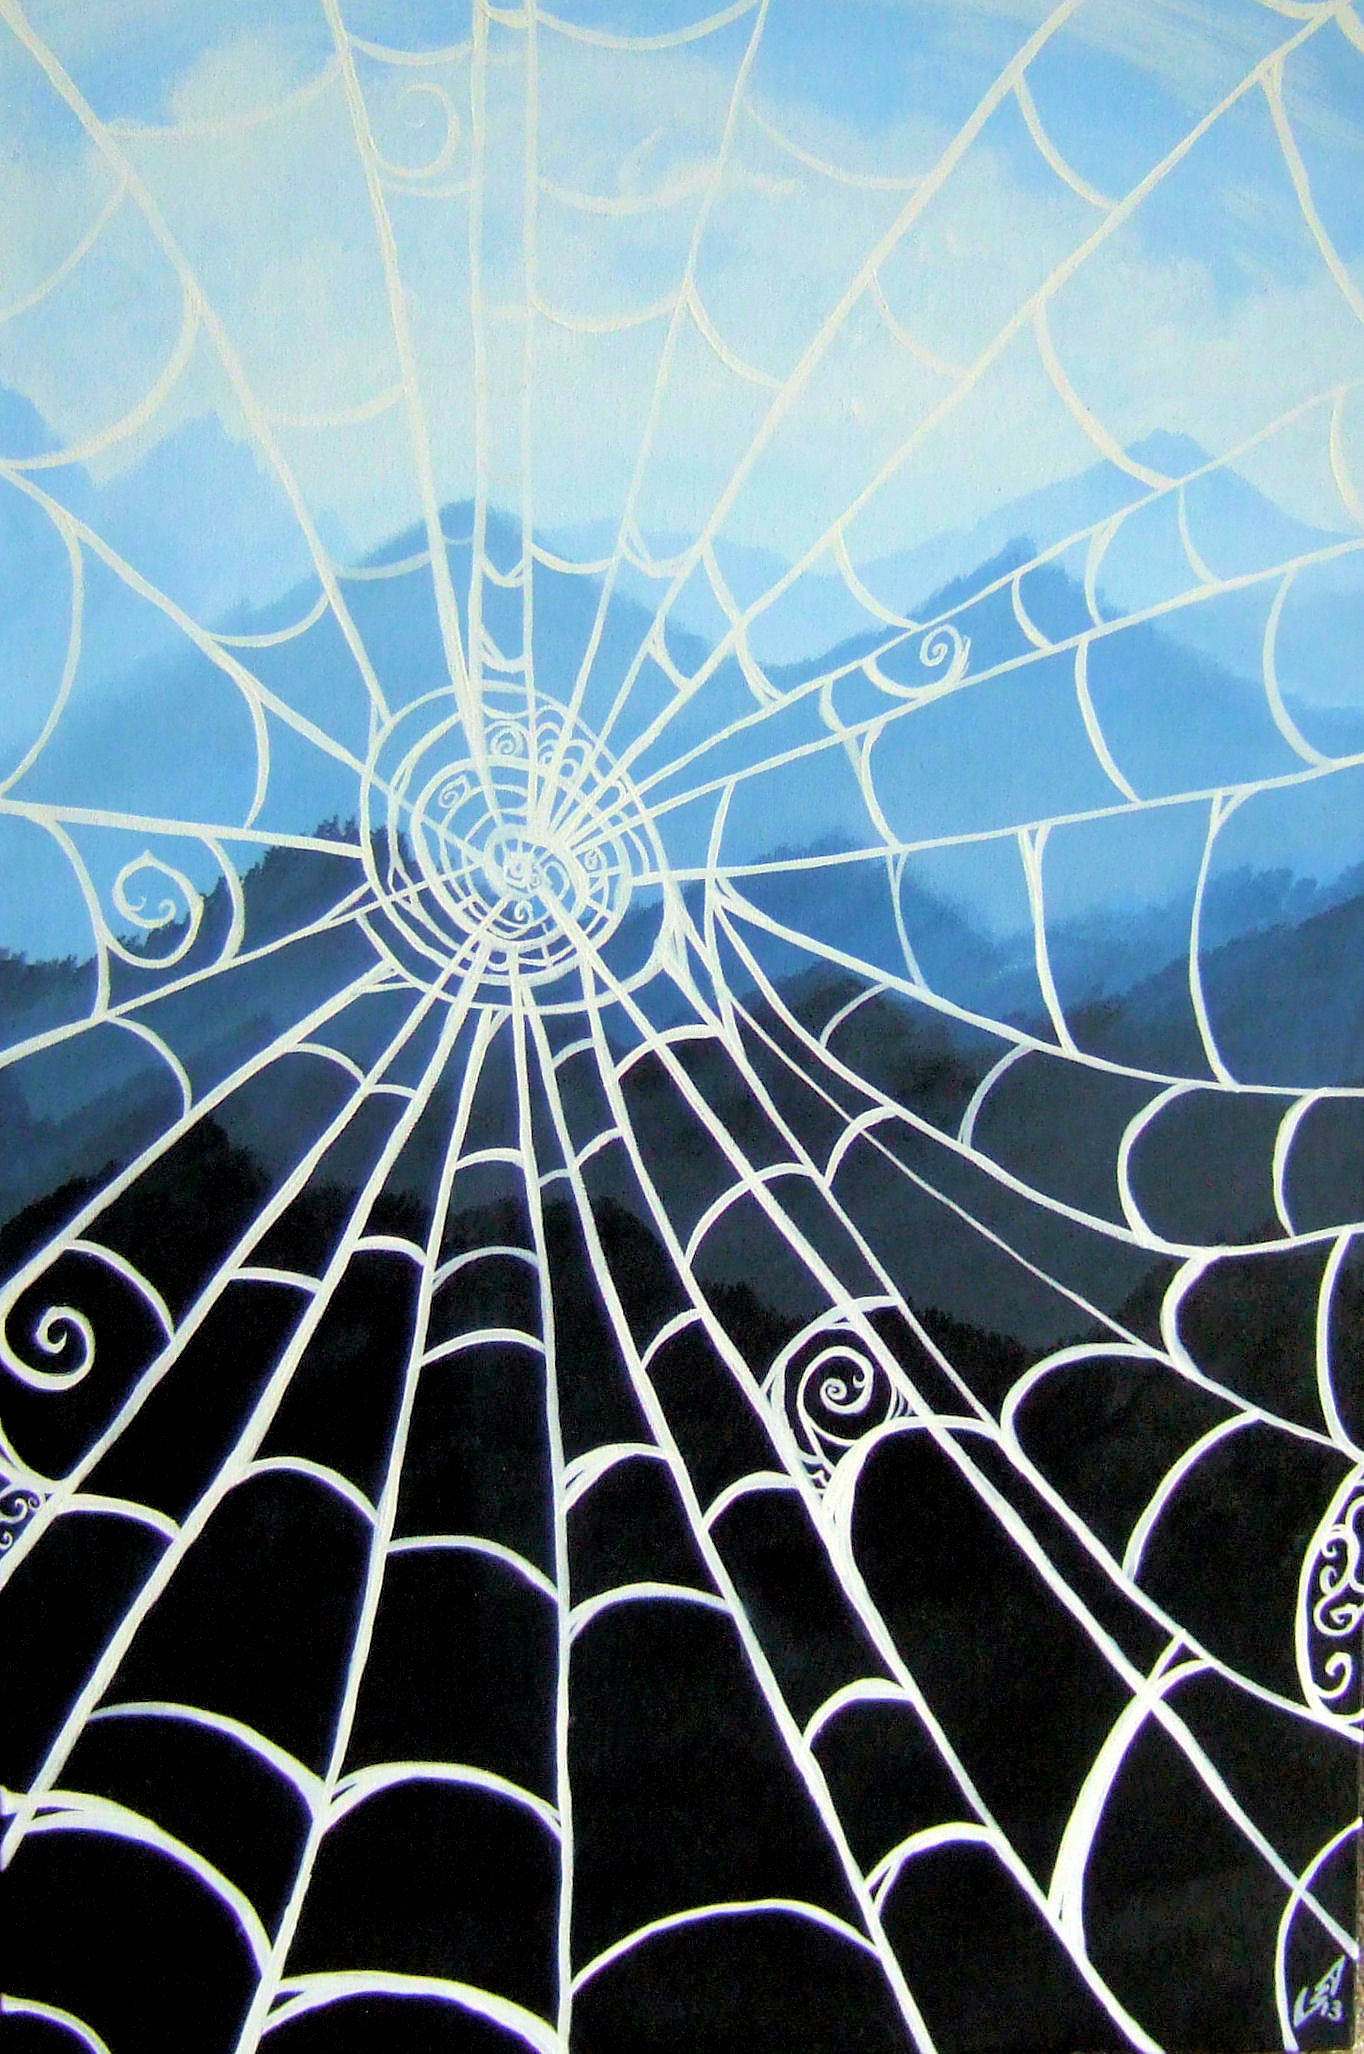 Web With A View artwork by Stefanie Schultz - art listed for sale on Artplode